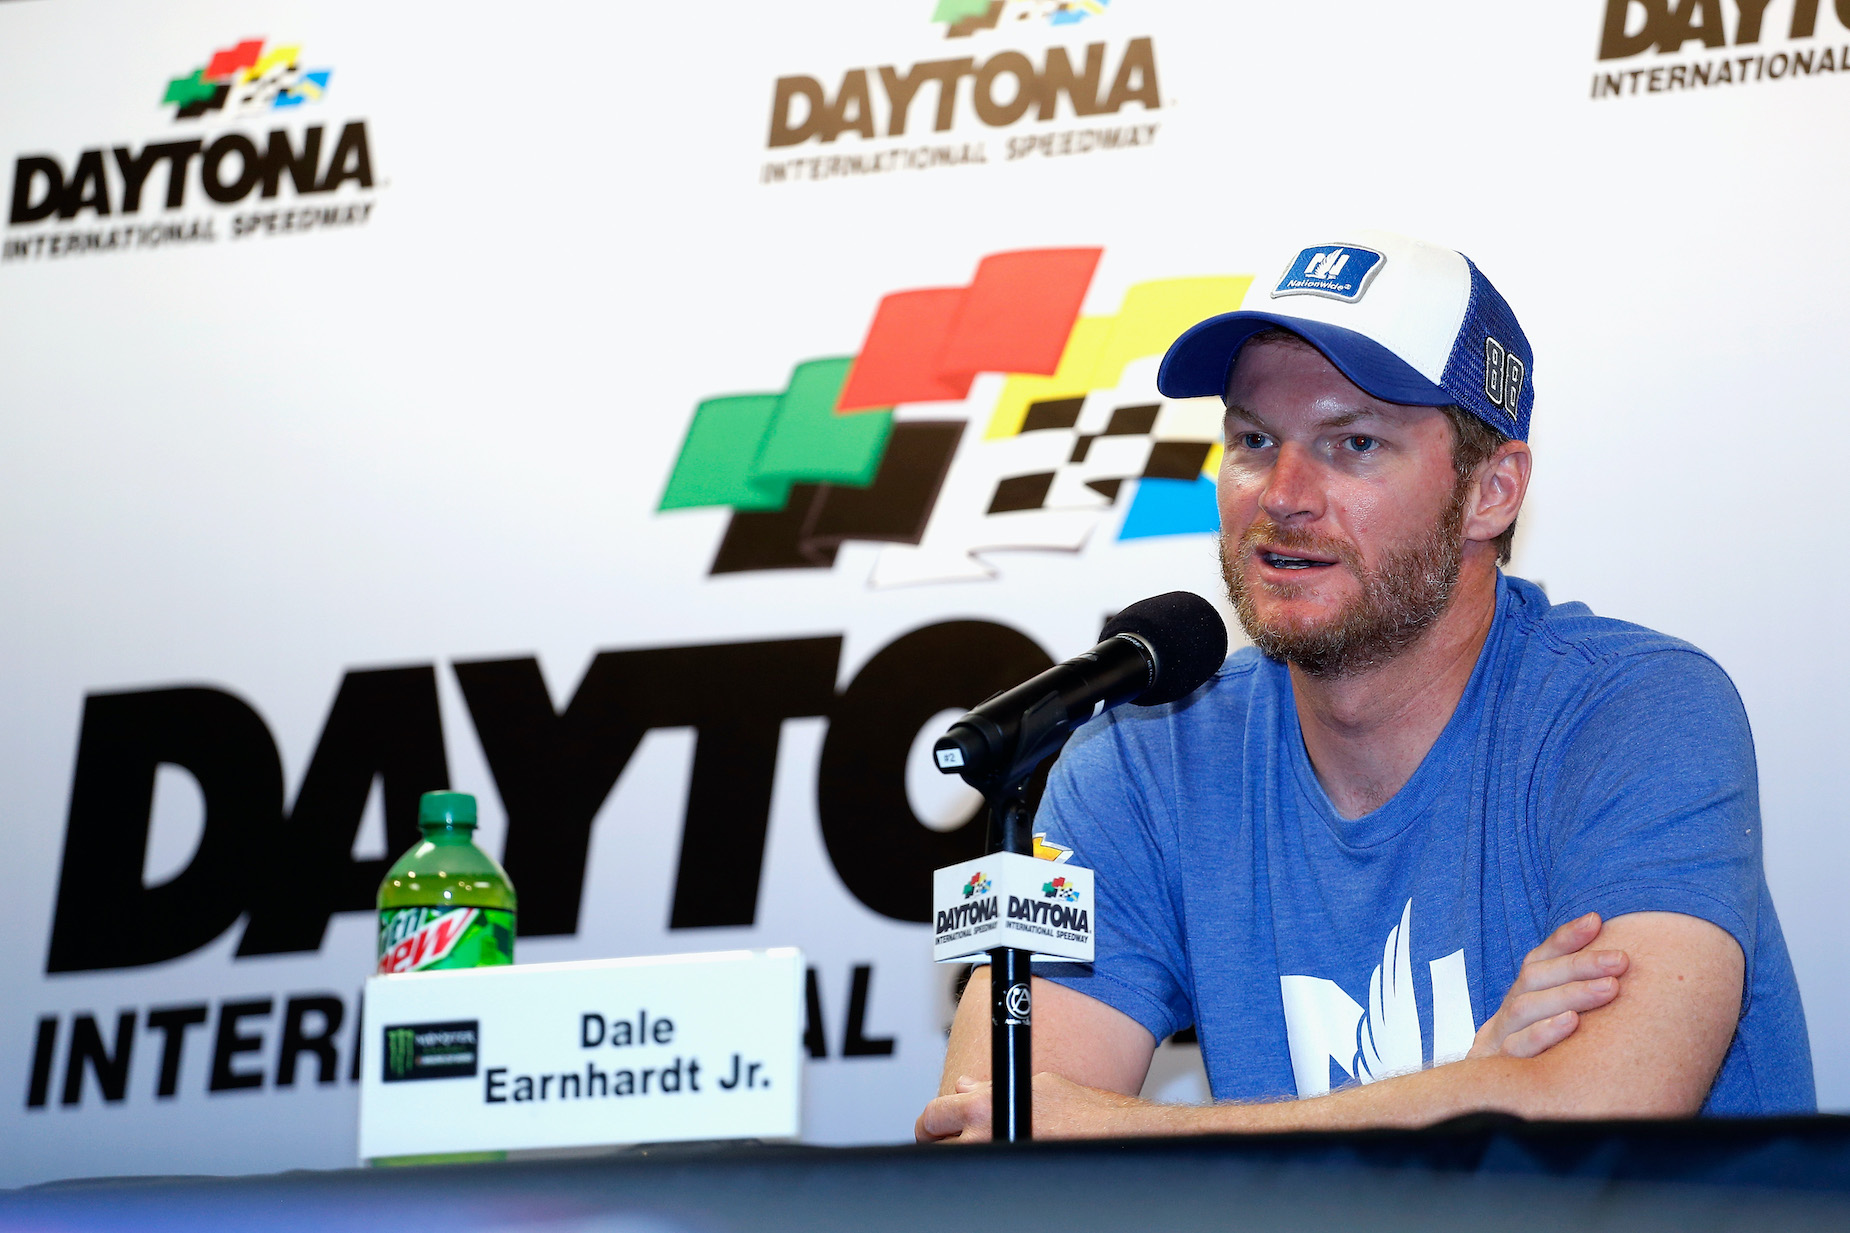 Dale Earnhardt Jr. embraced Daytona International Speedway as a special place after his father's tragic death.